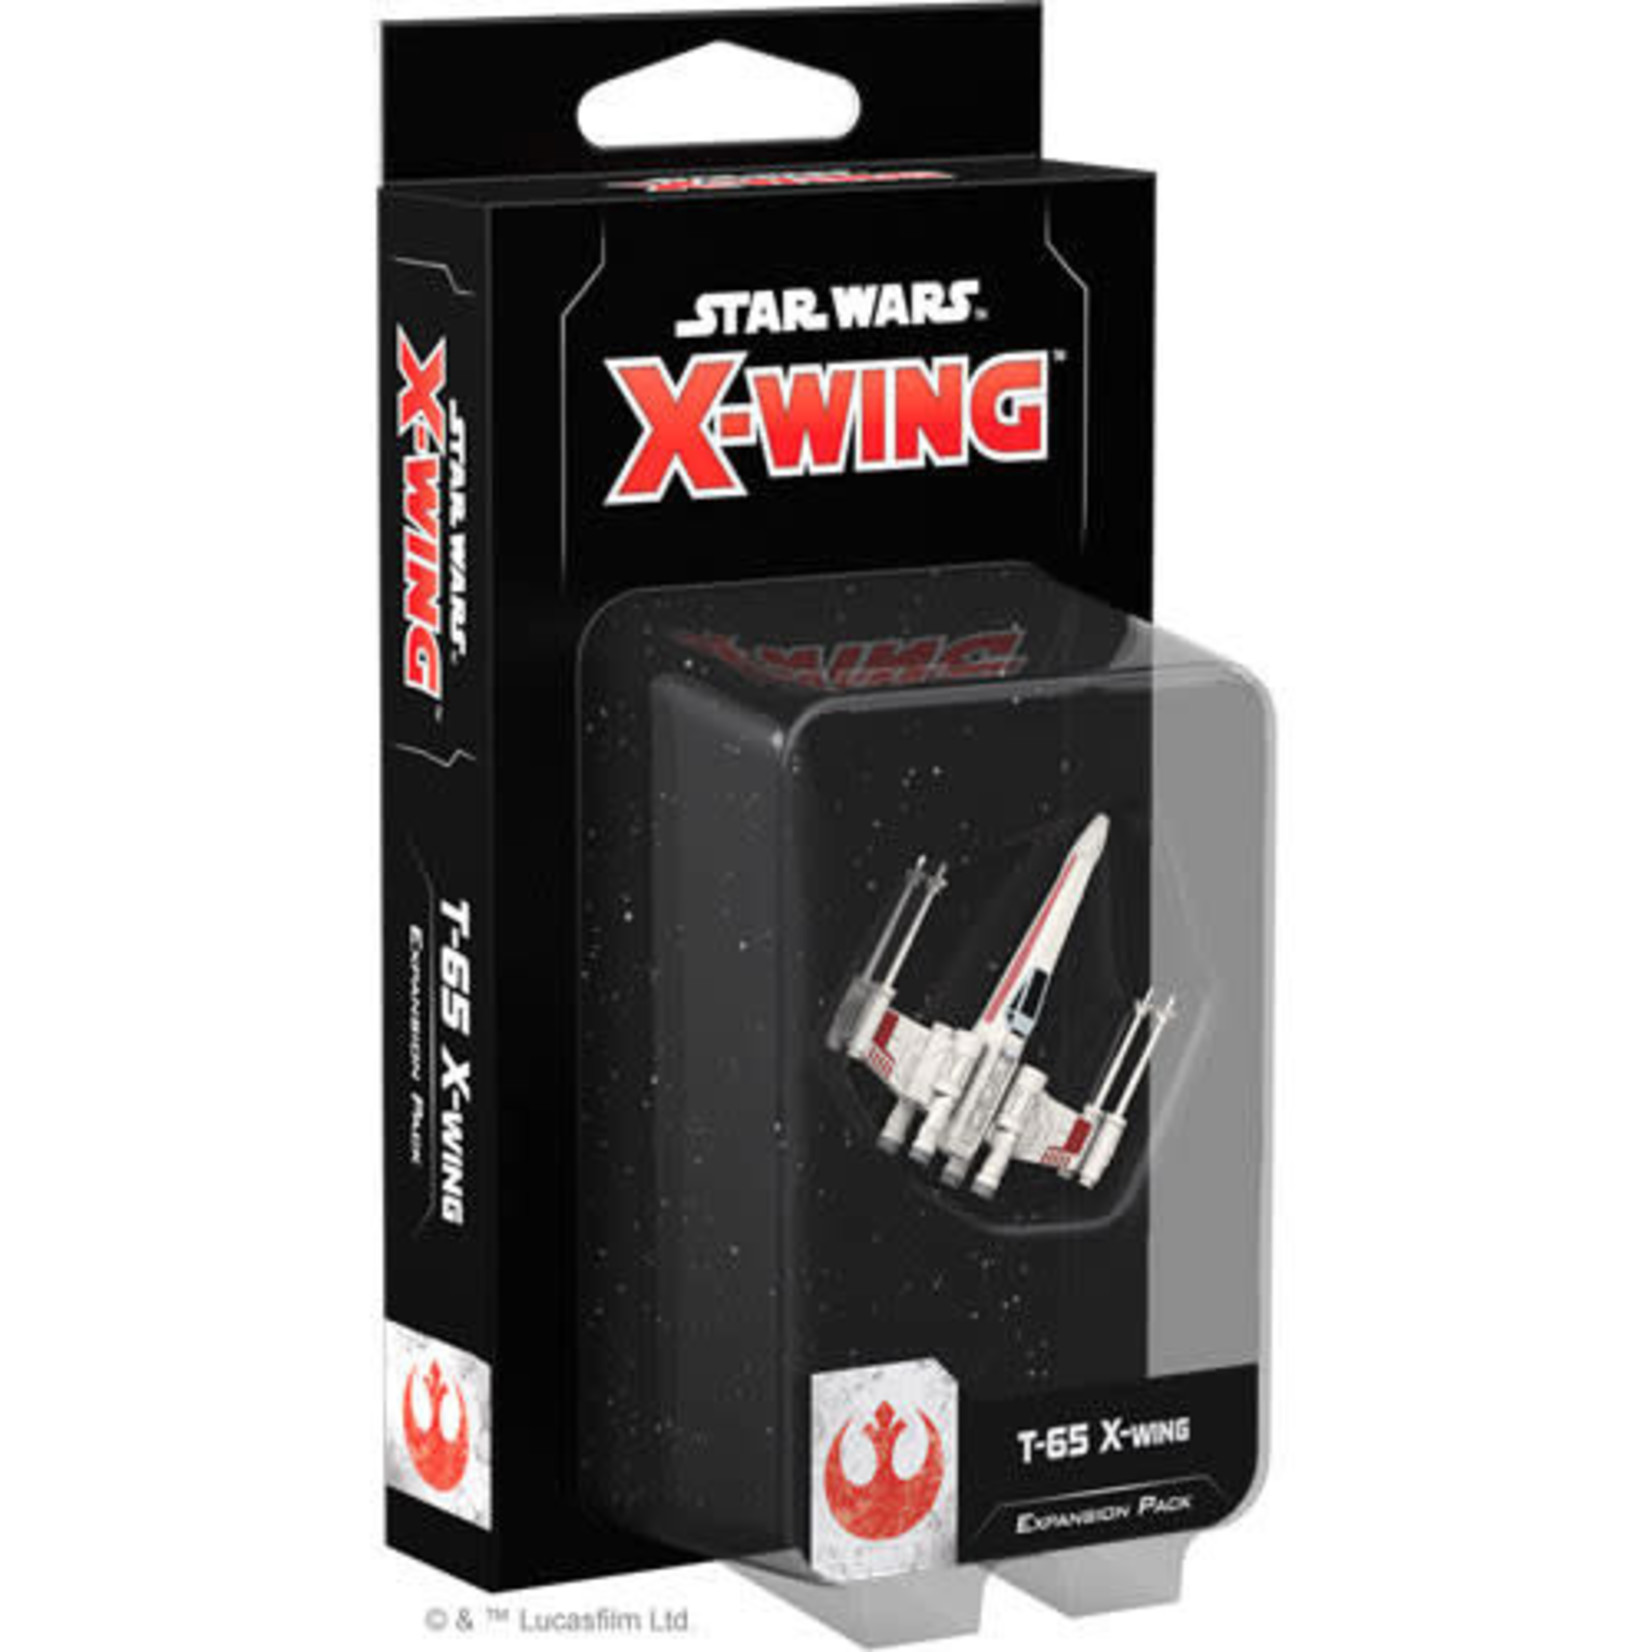 Star Wars X-Wing 2e: T-65 X-Wing Expansion